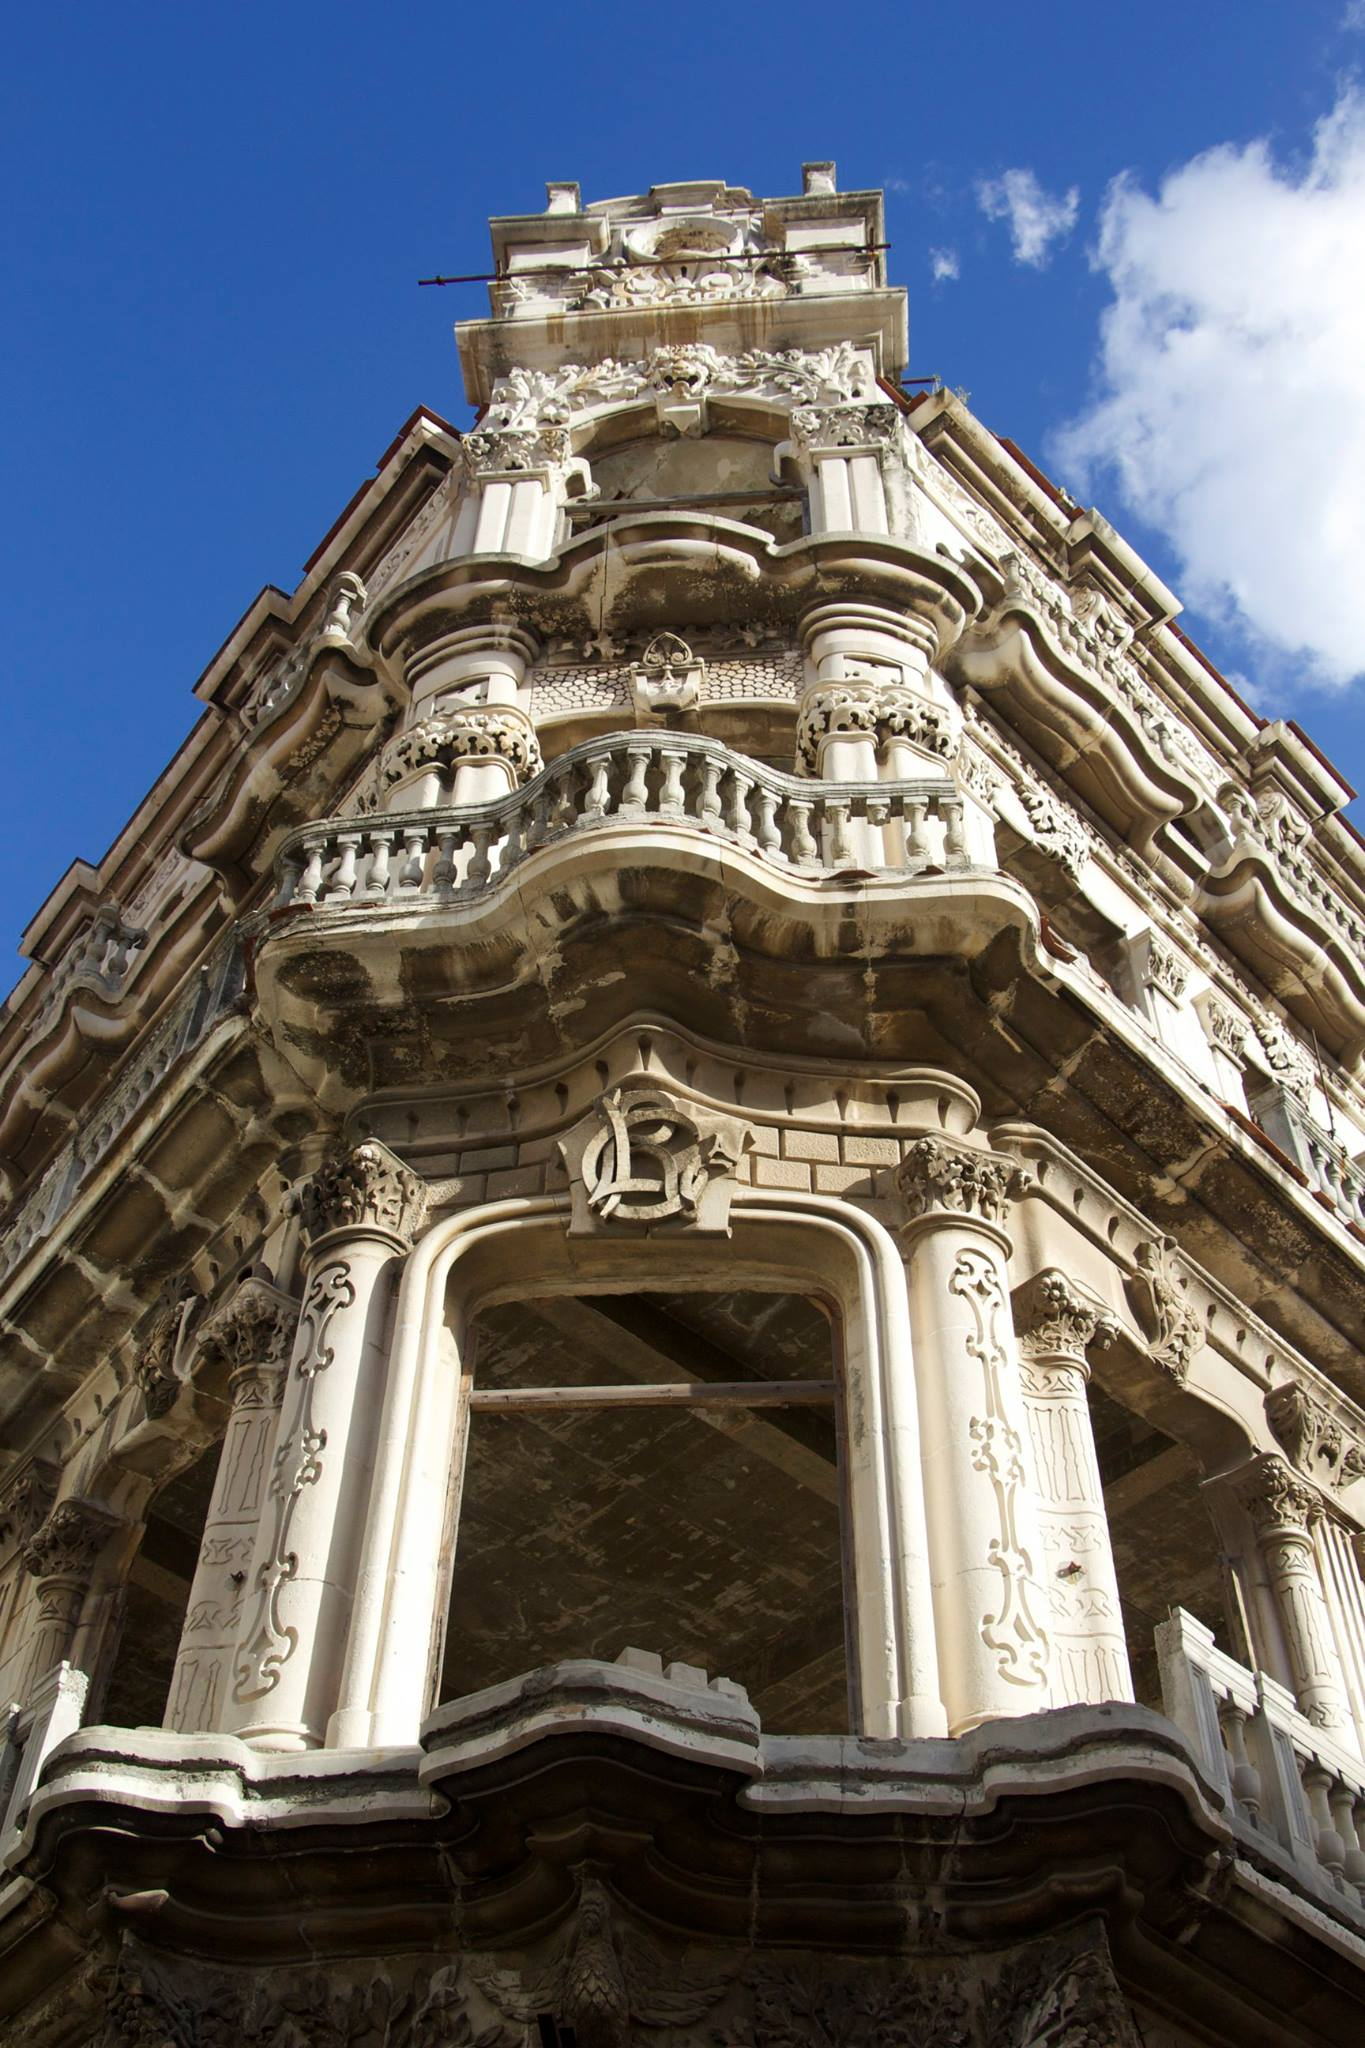 The buildings of Cuba are absolutely gorgeous. Intricate molding, amazing terraces in both French and Spanish styles. But...